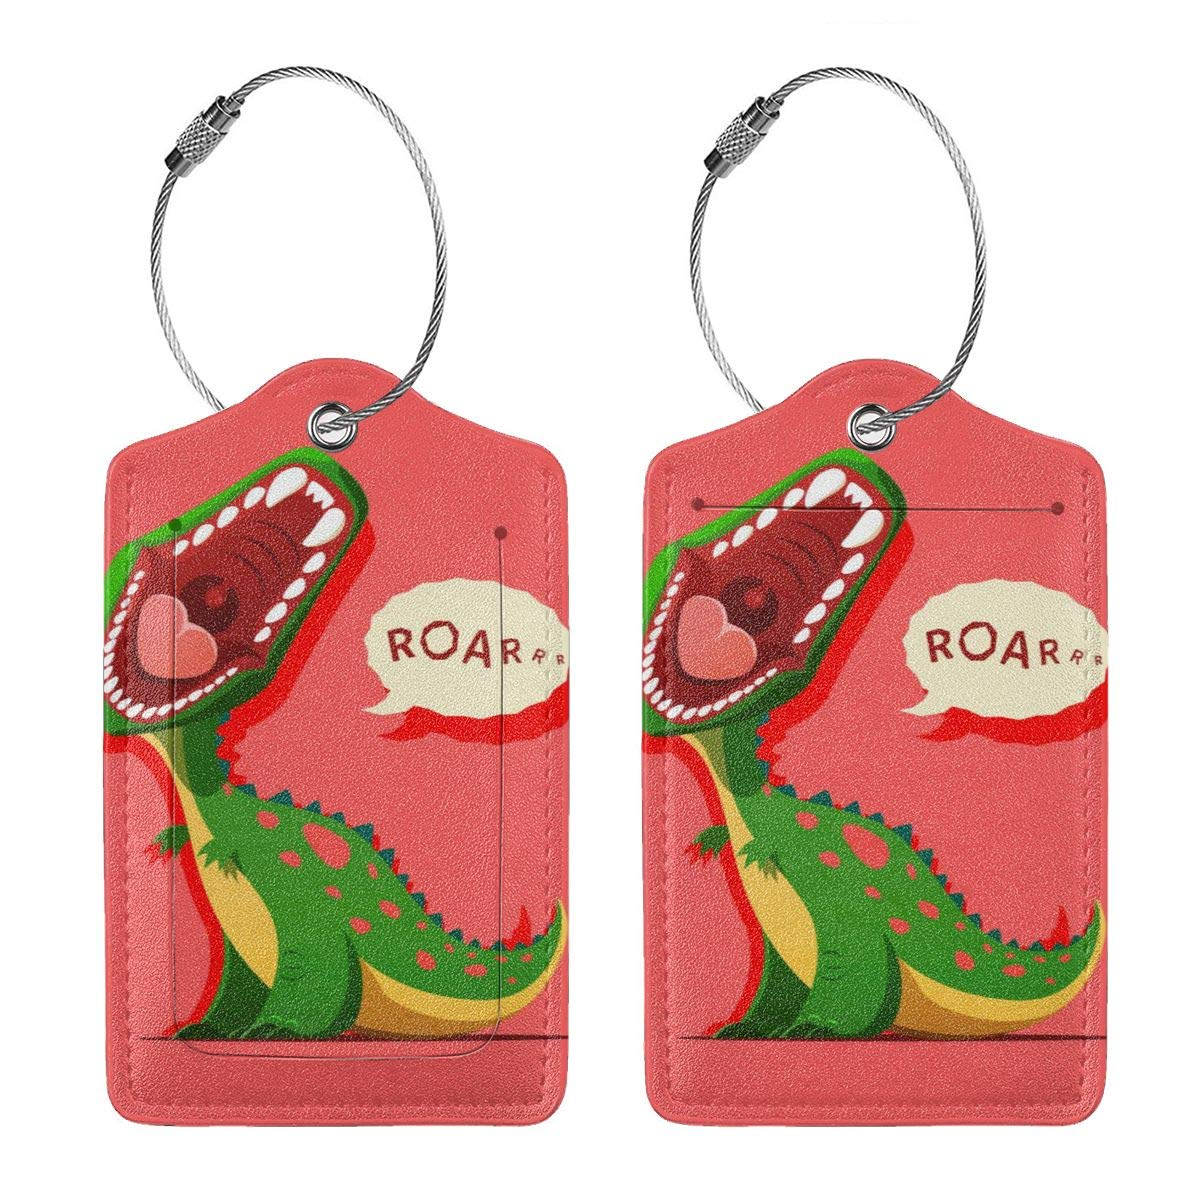 Lucaeat Dinosaur Is Roaring Luggage Tag PU Leather Bag Tag Travel Suitcases ID